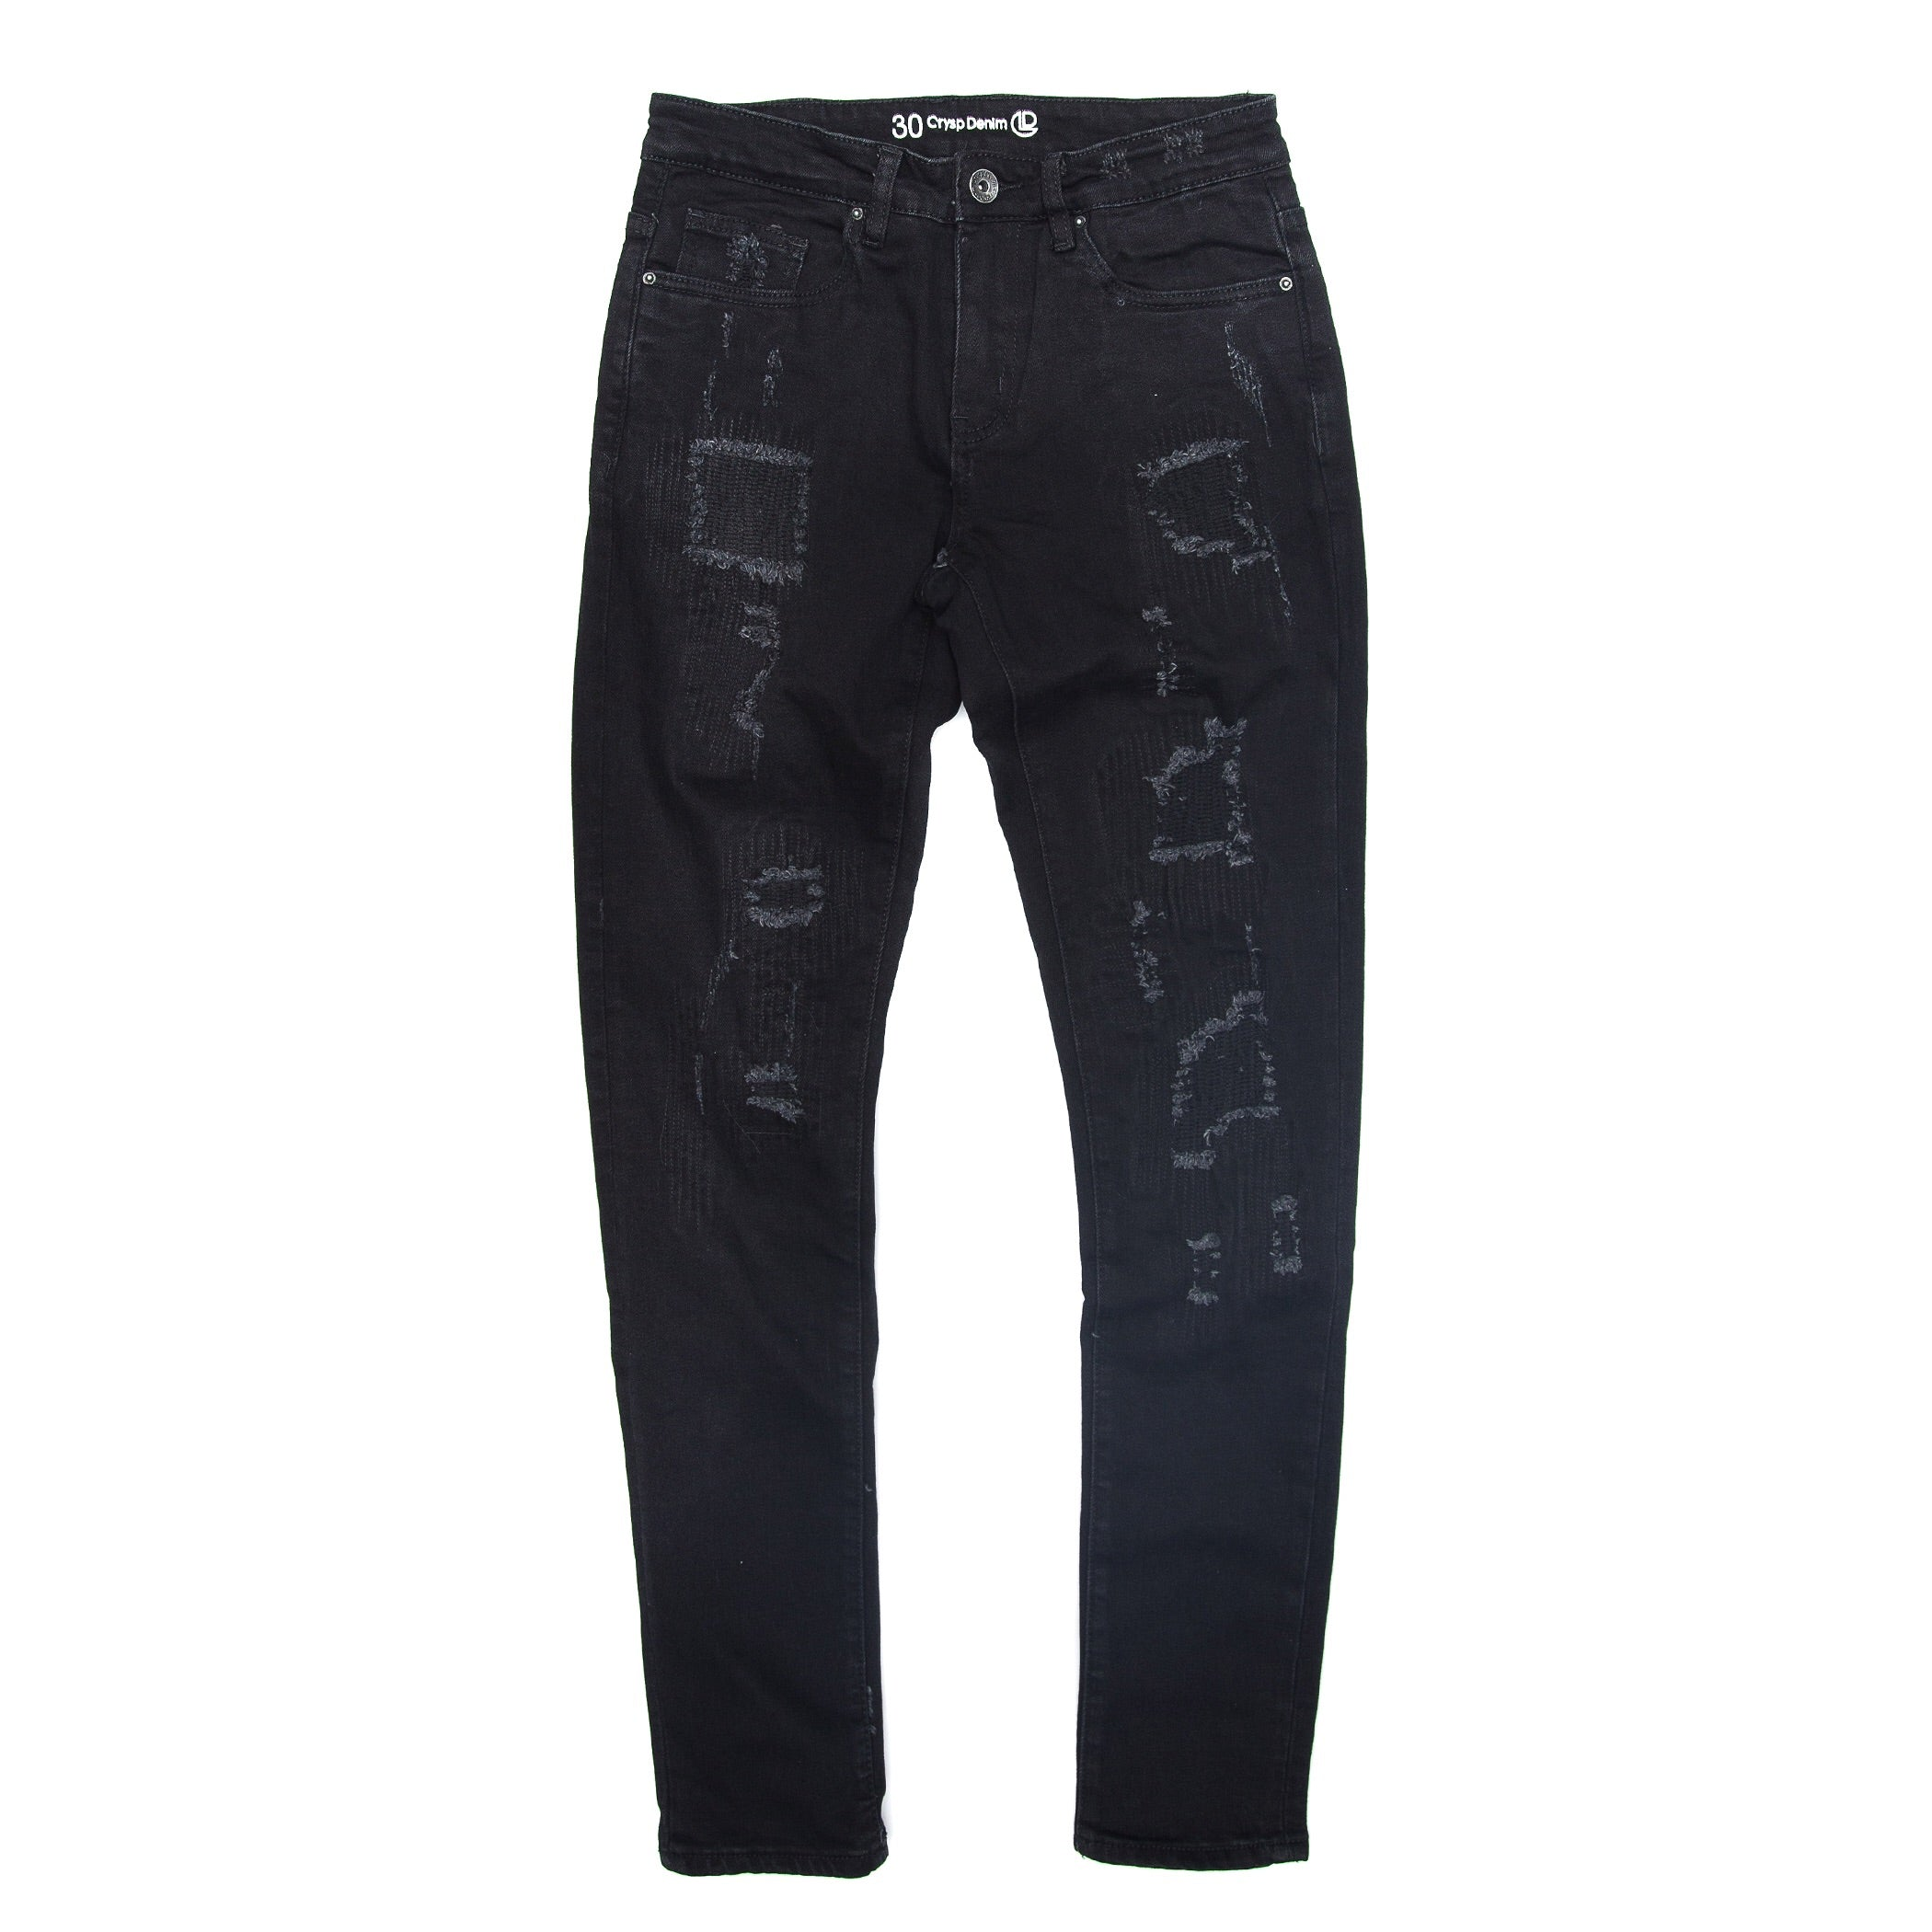 Crysp Denim - Atlantic